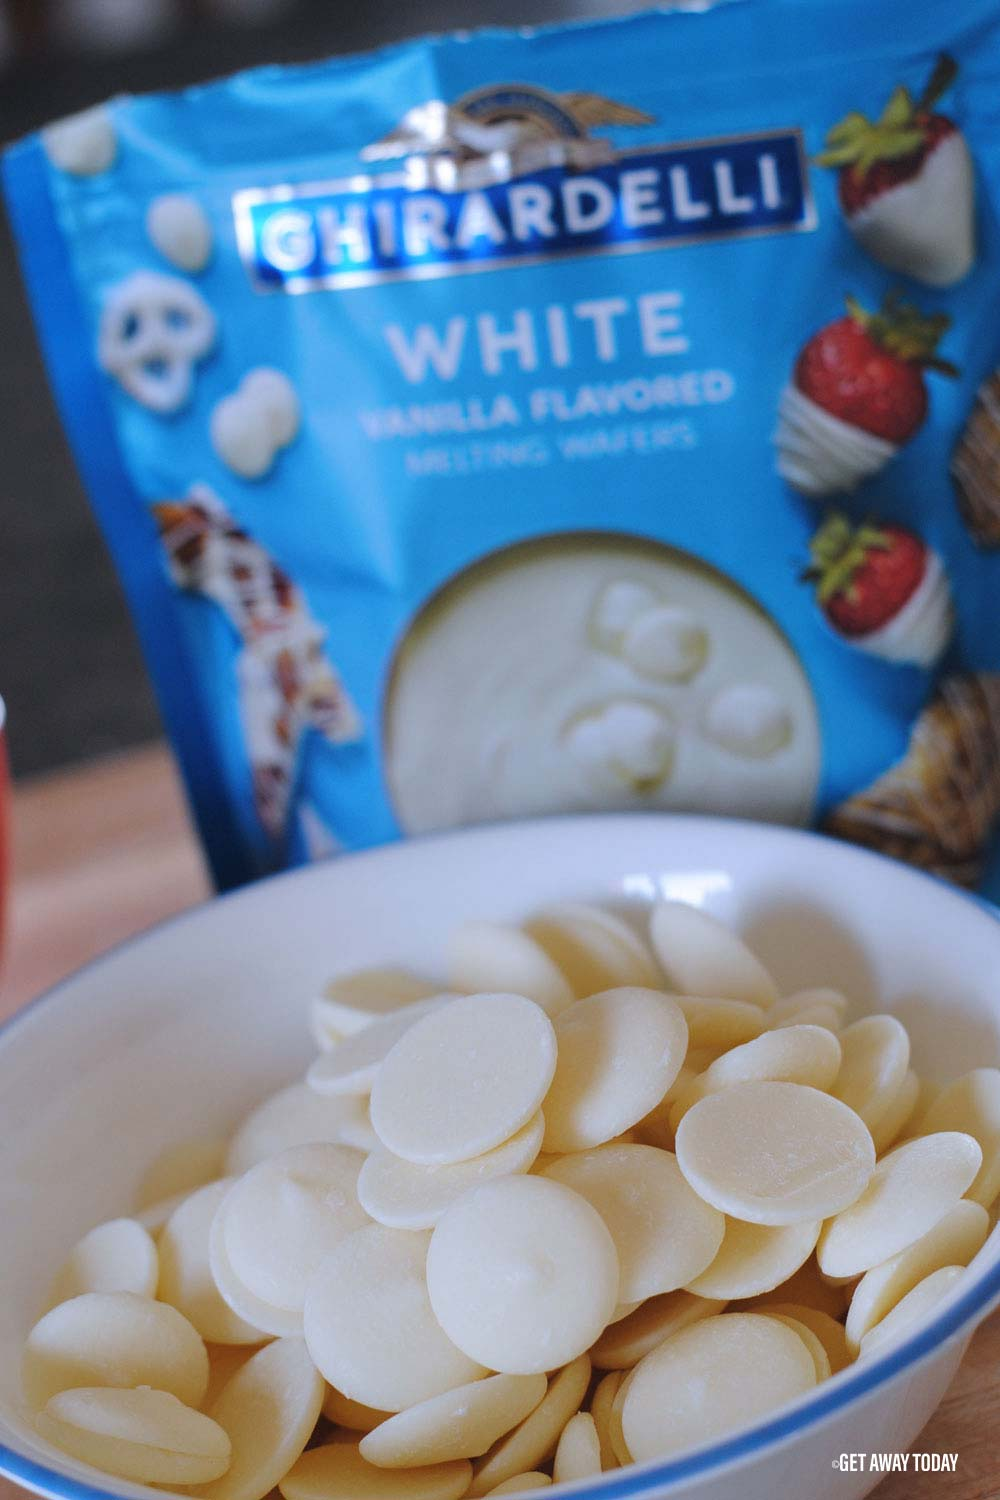 White chocolate bag